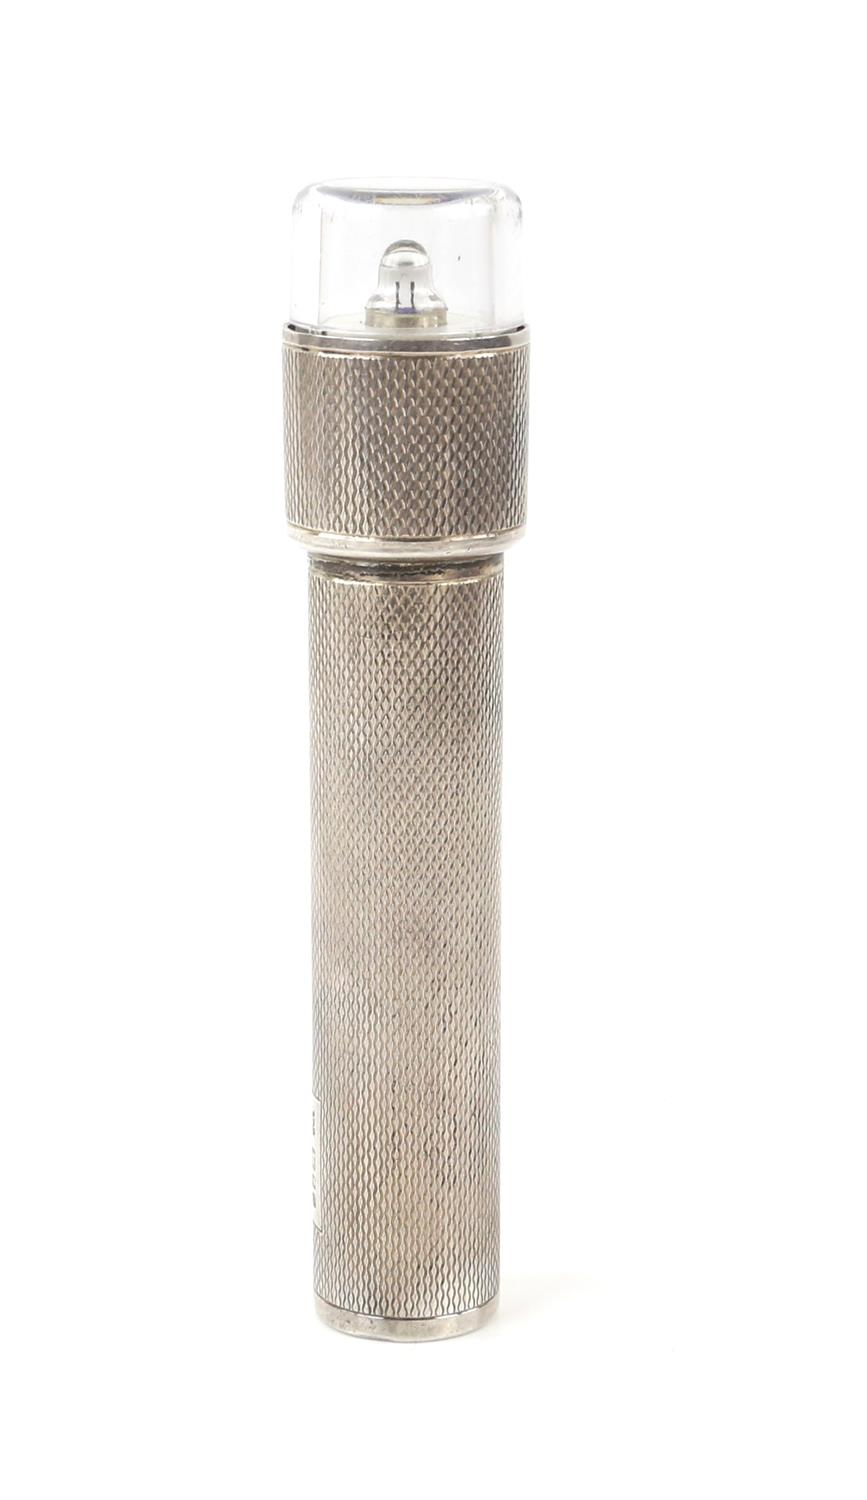 Large silver hand held torch with an engine turned finish and a rectangular vacant cartouche by TP,